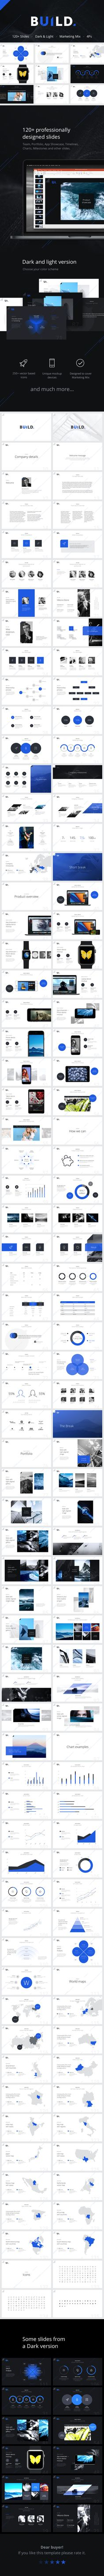 BUILD PowerPoint Presentation Template — Powerpoint PPTX #microsoft presentation #business presentation • Download ➝ https://graphicriver.net/item/build-powerpoint-presentation-template/19167639?ref=pxcr